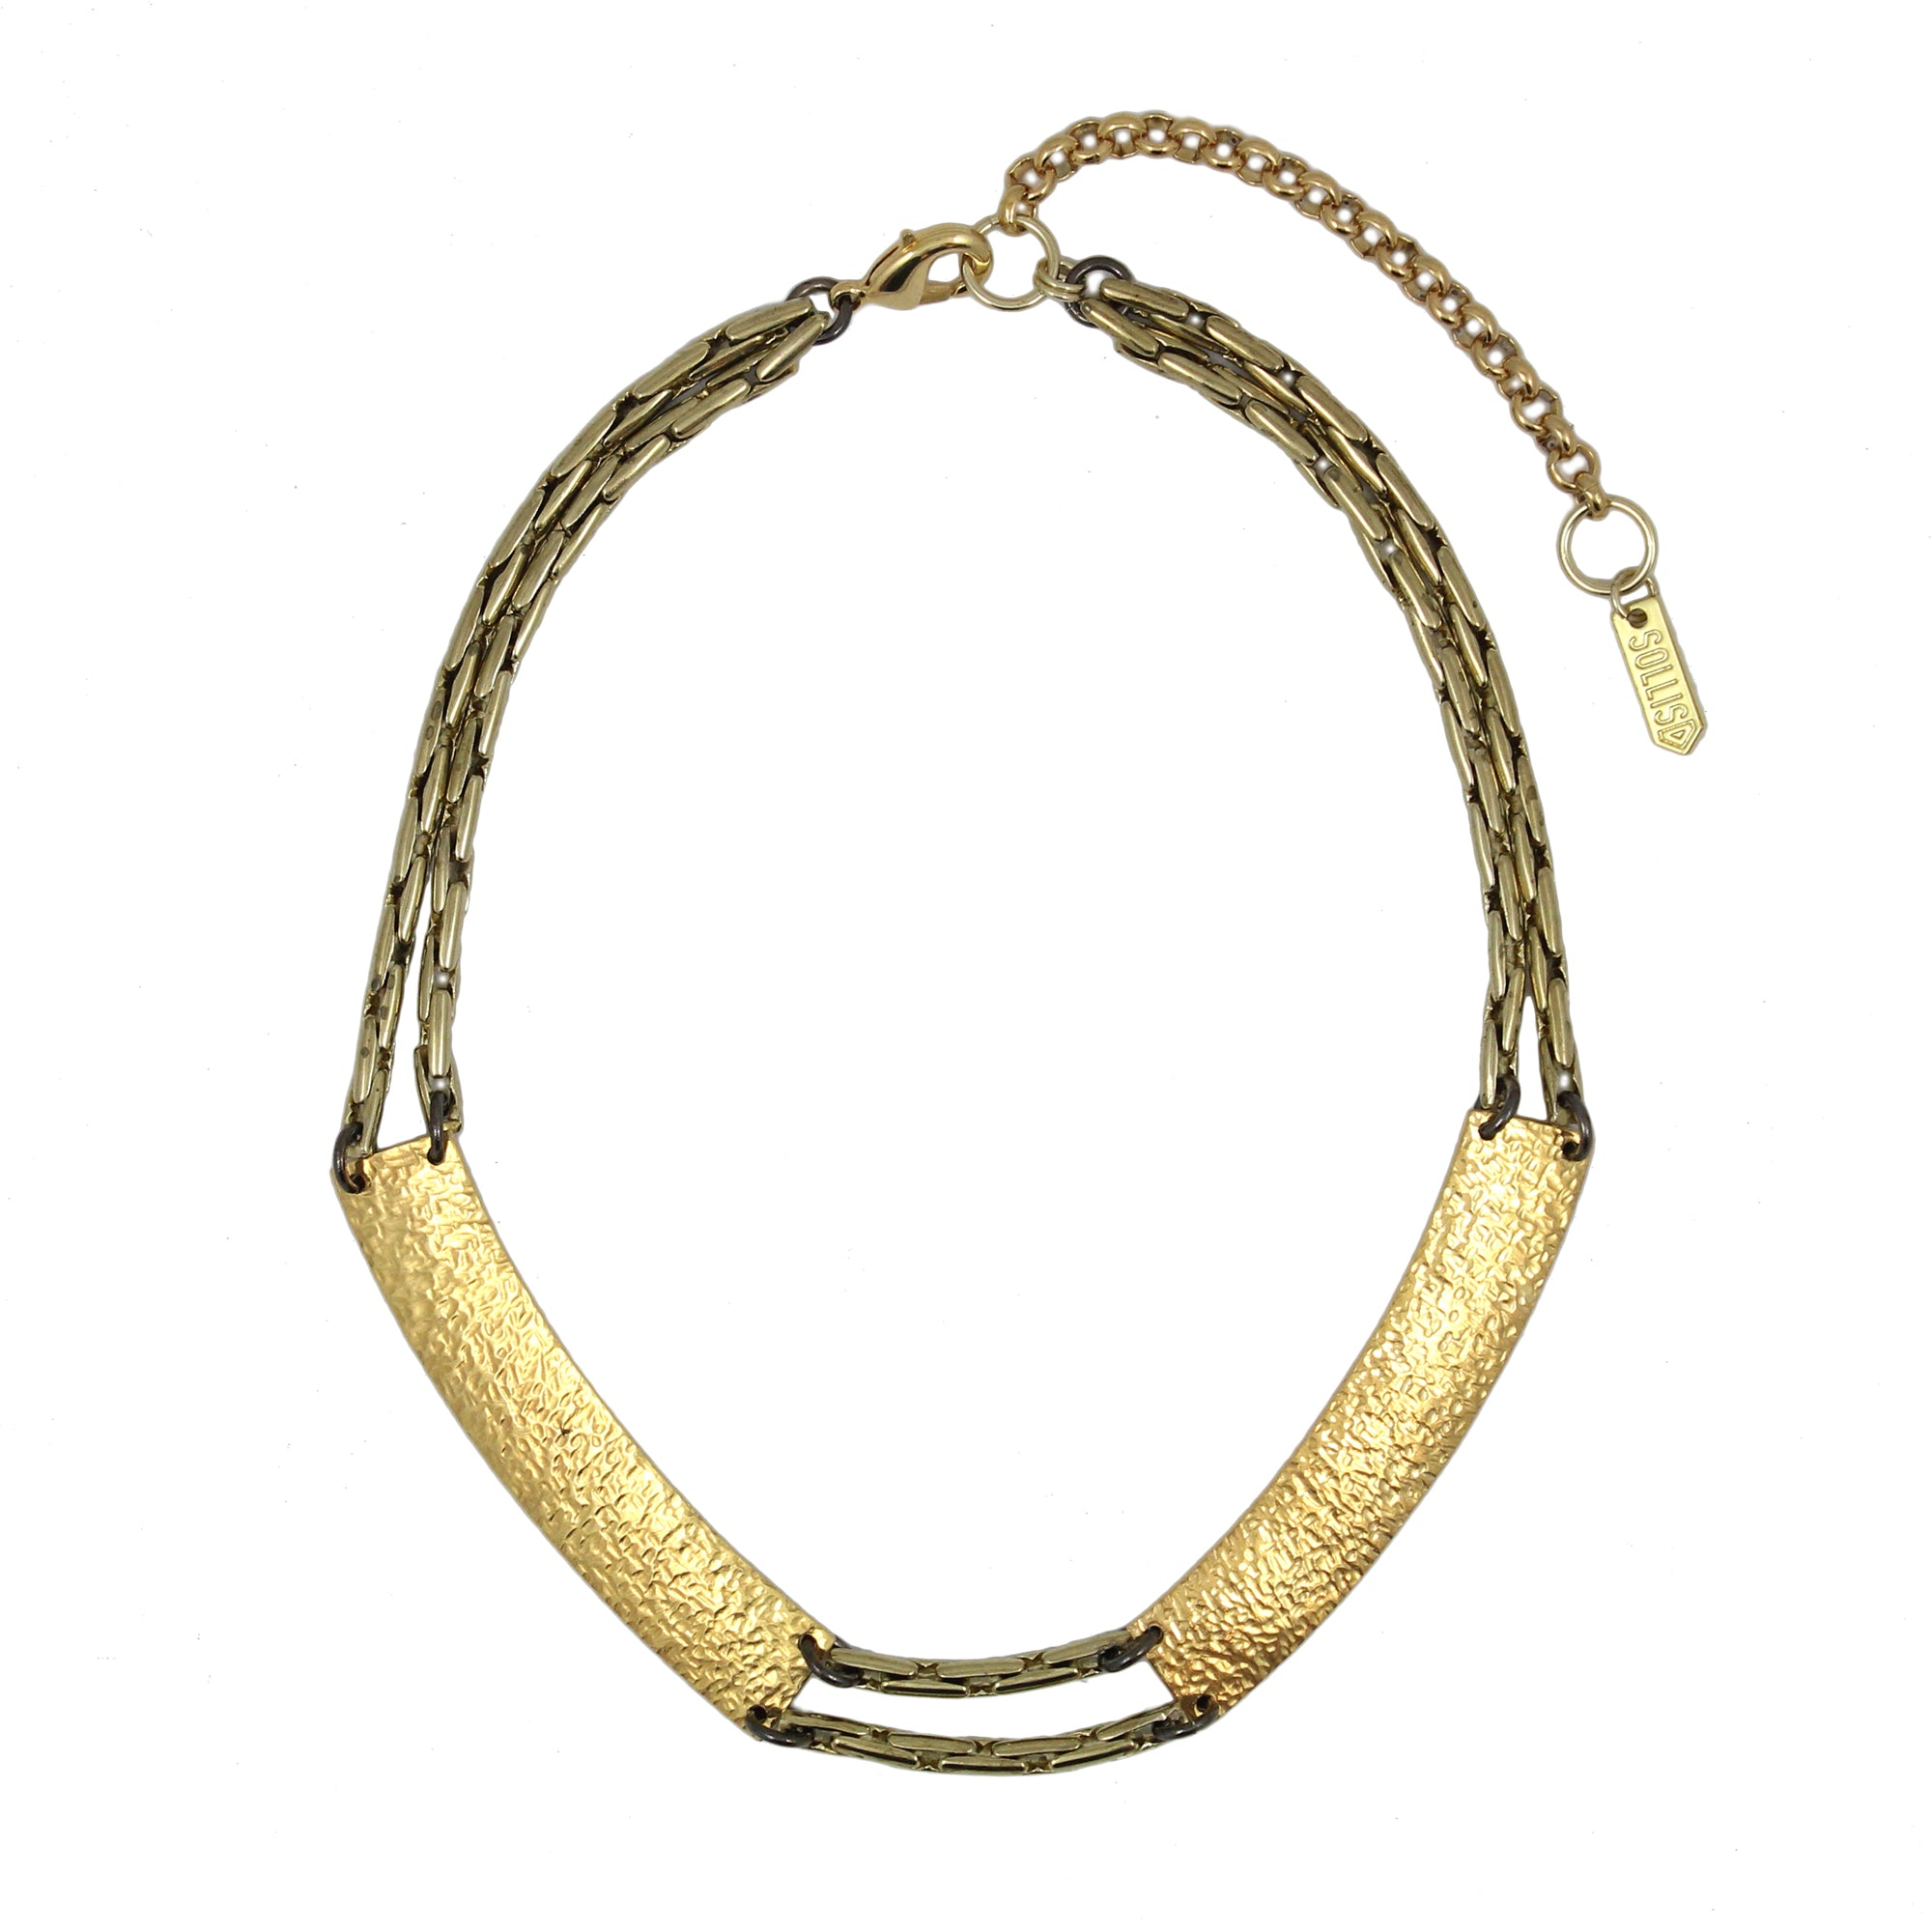 CLEO necklace - 70% OFF